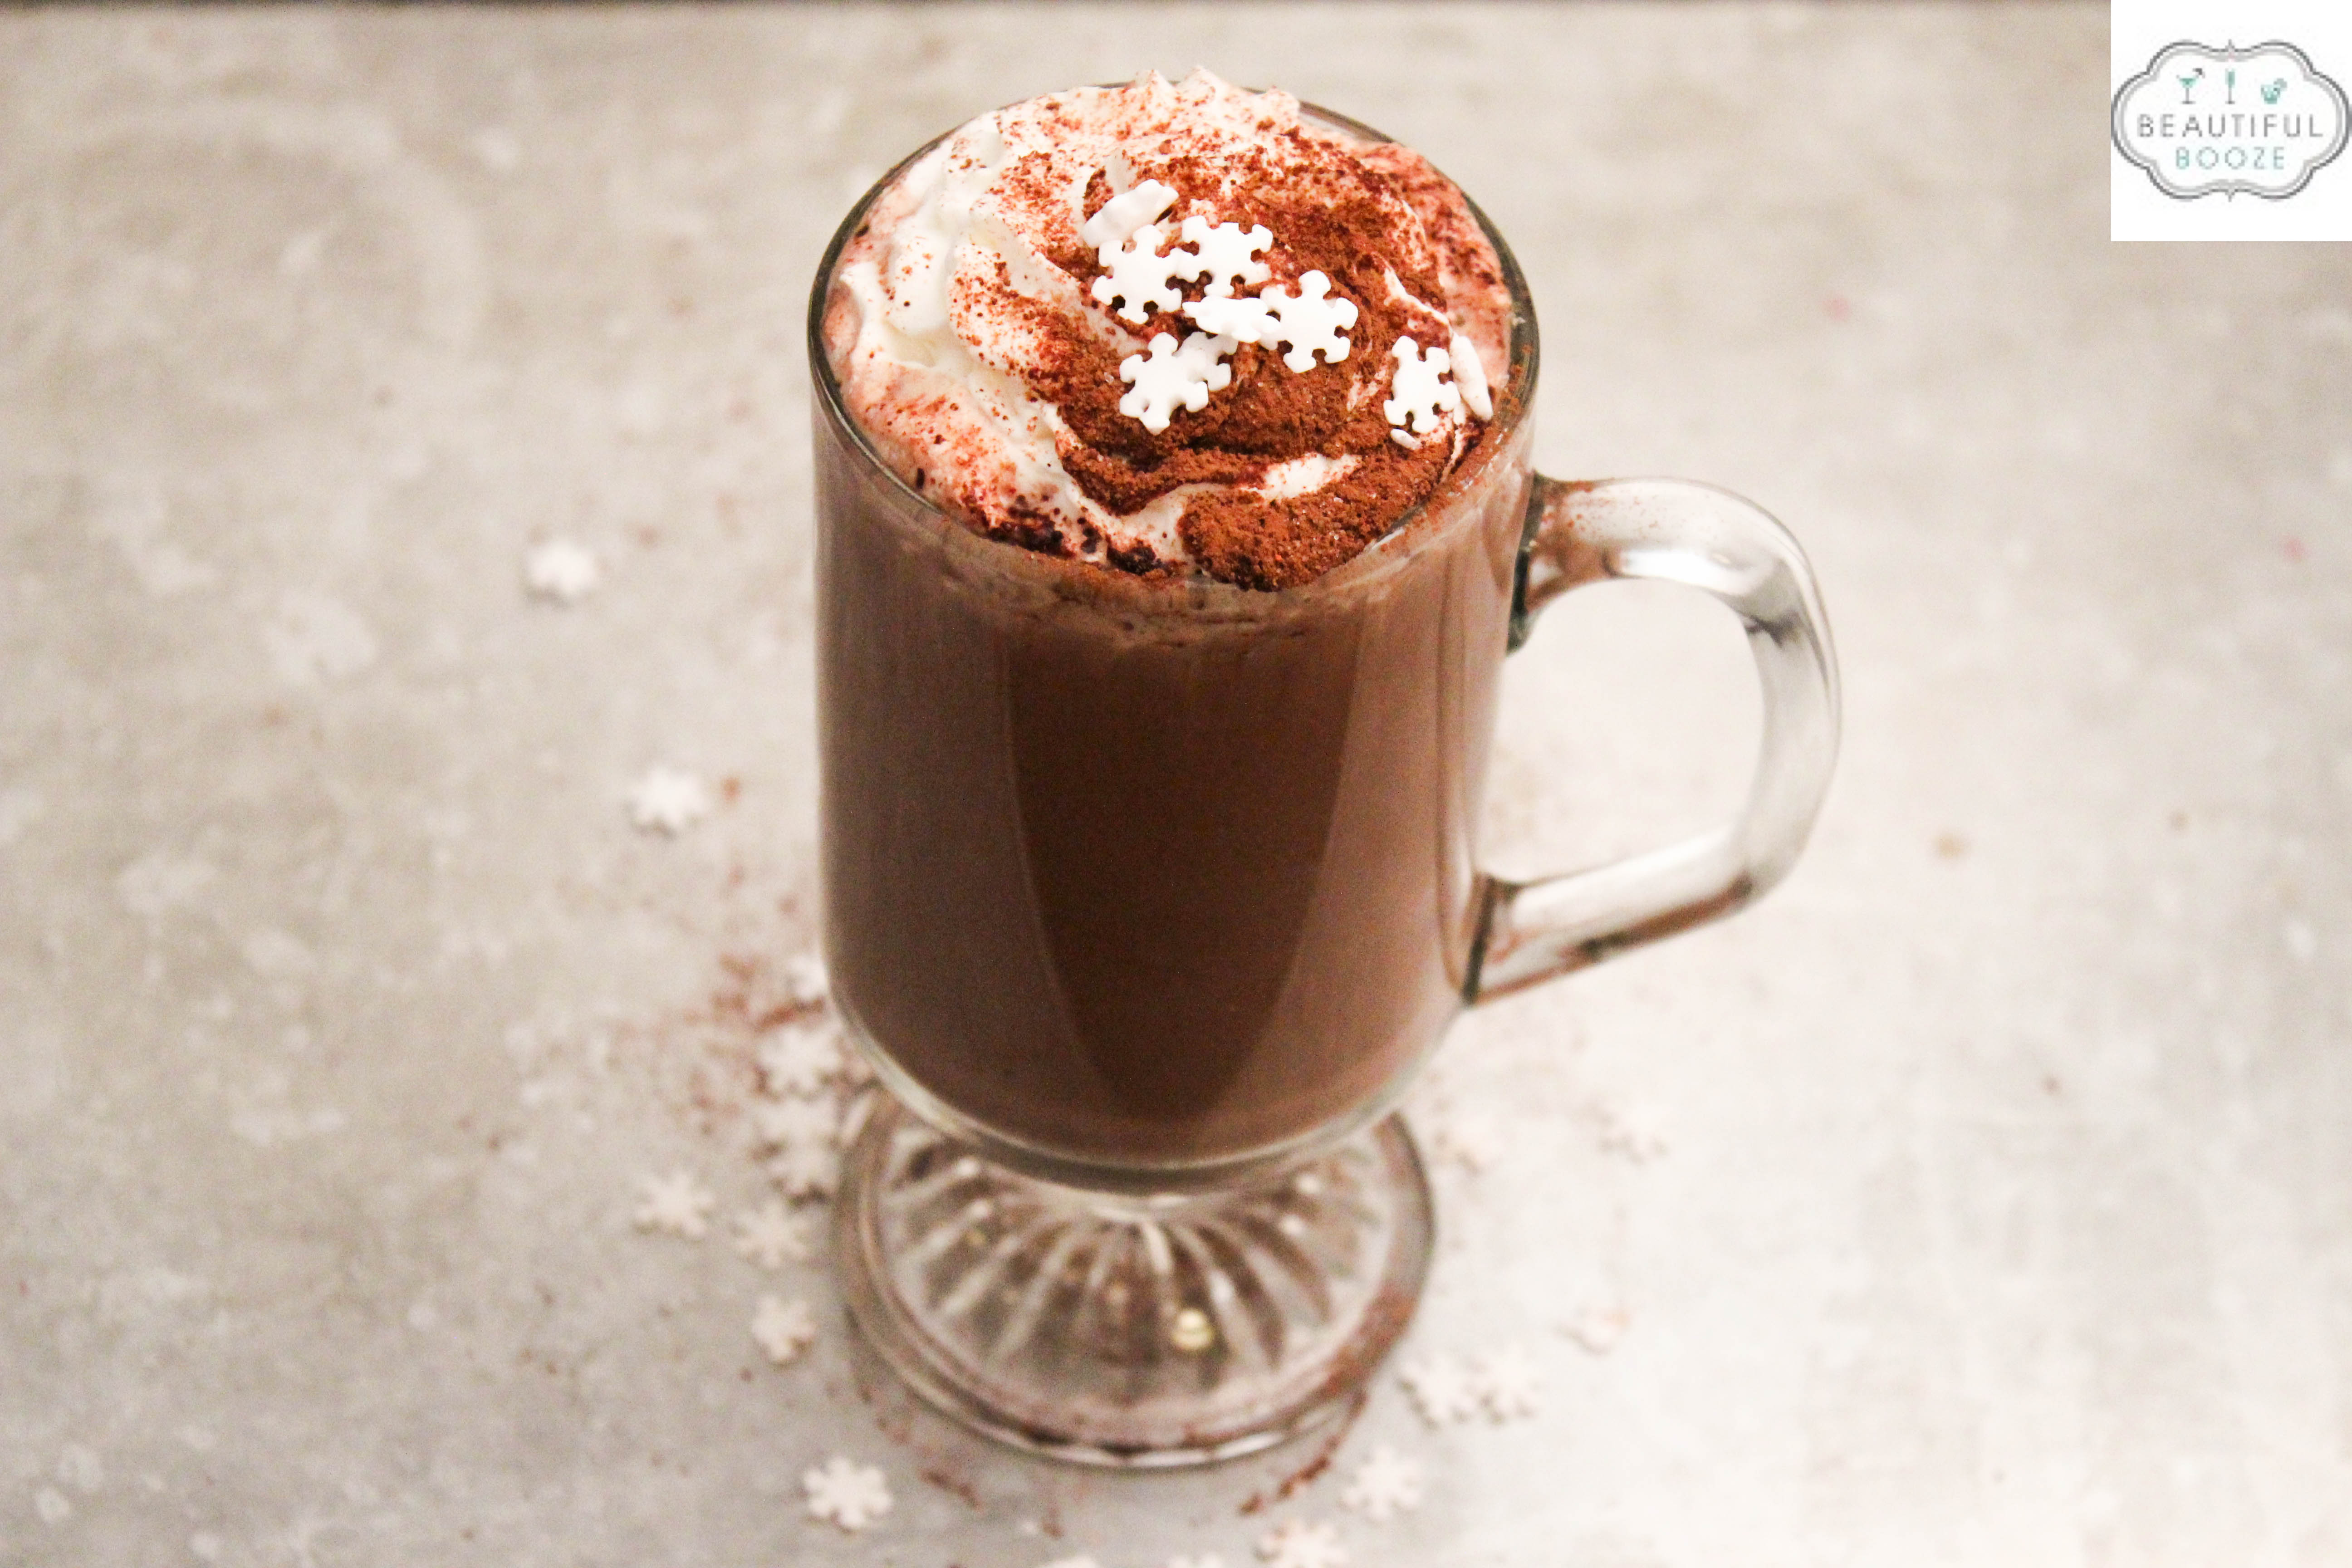 Spiked Hot Chocolate = Bourbon + Beer + Hot Chocolate!